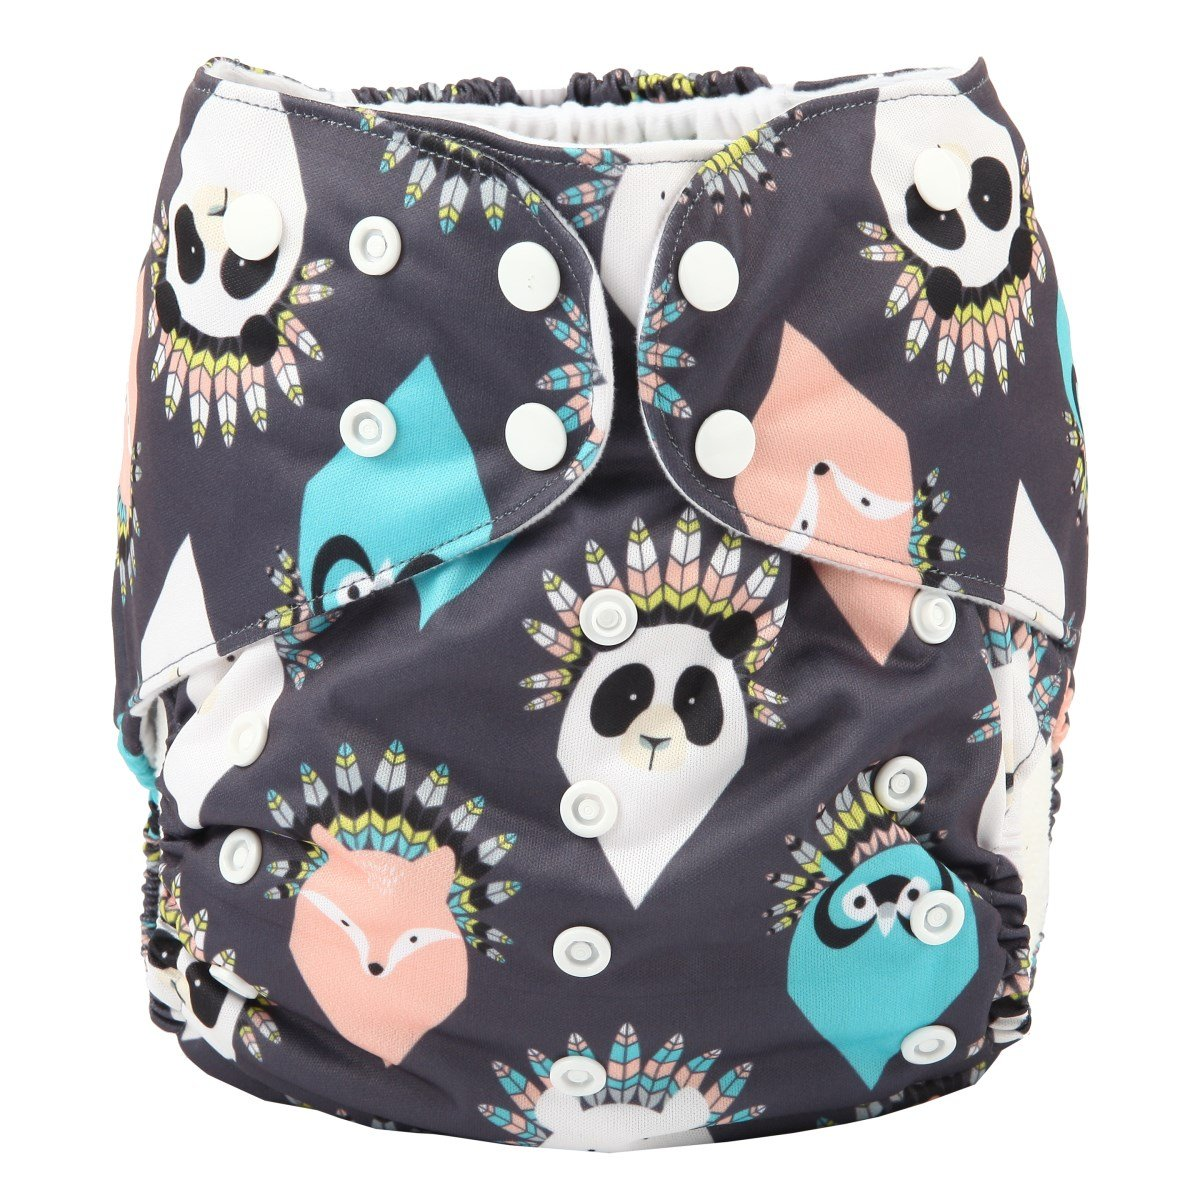 Paisley Fox Sigzagor 2 to 7 Years Old Junior Big Cloth Diaper Nappy Pocket Reusable Washable Baby Kids Toddler